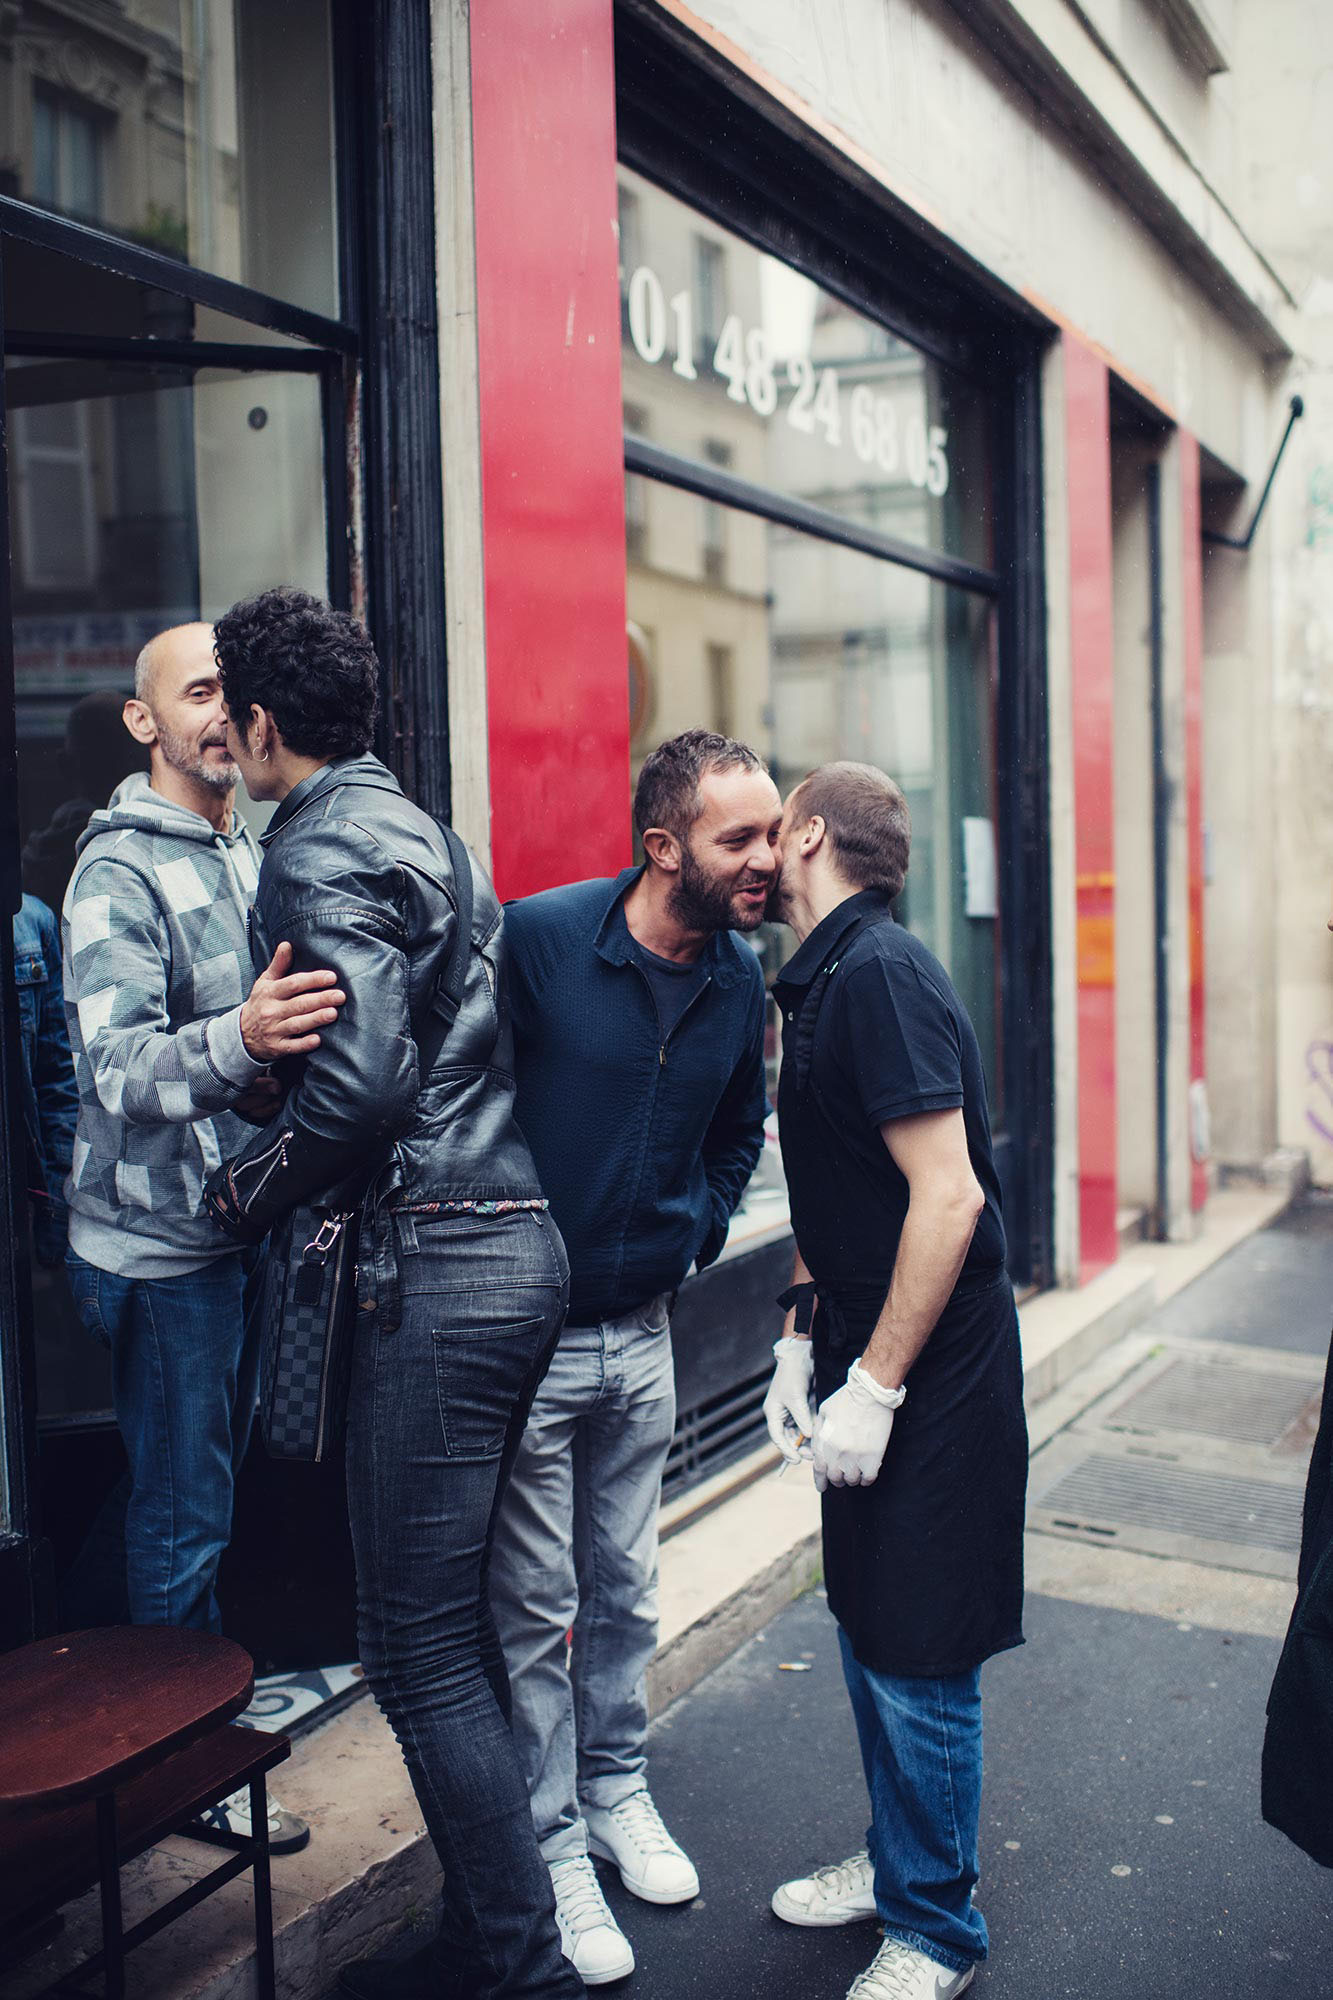 urban zintel photography — paris, mon amour